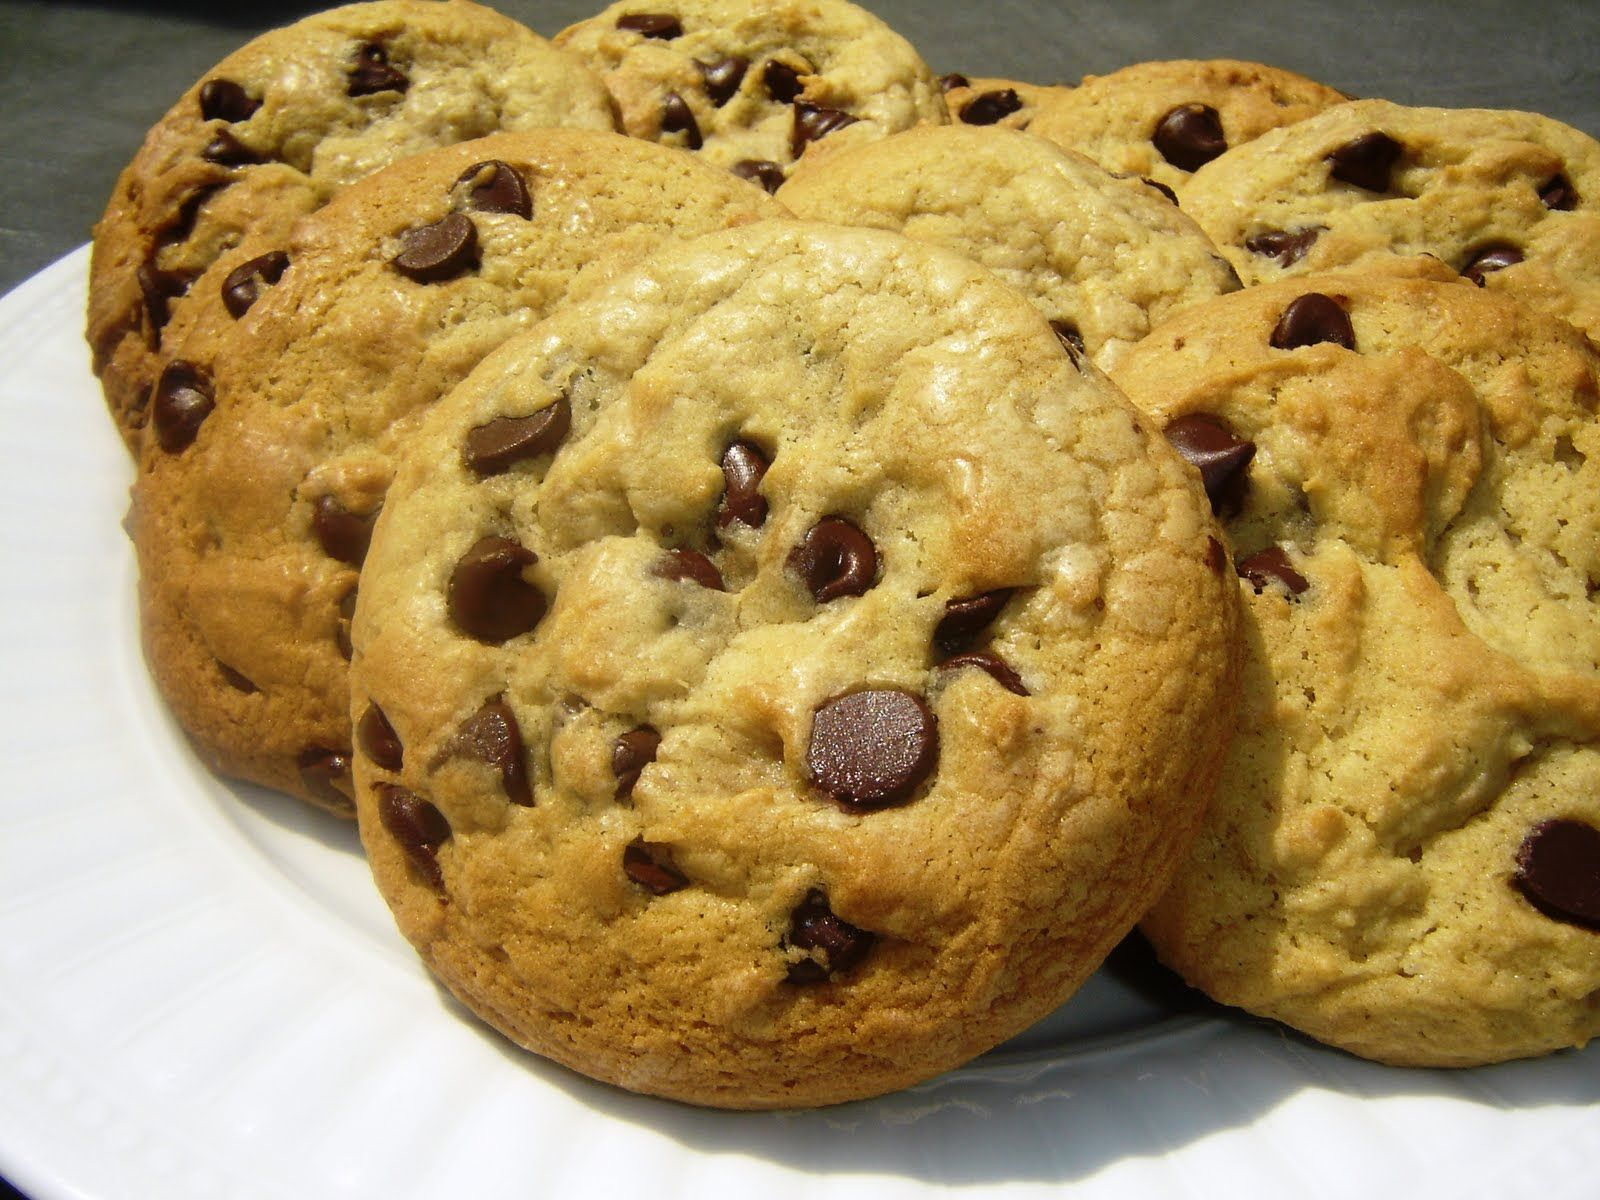 Soap Mom's Kitchen: My Best Ever Chocolate Chip Cookies